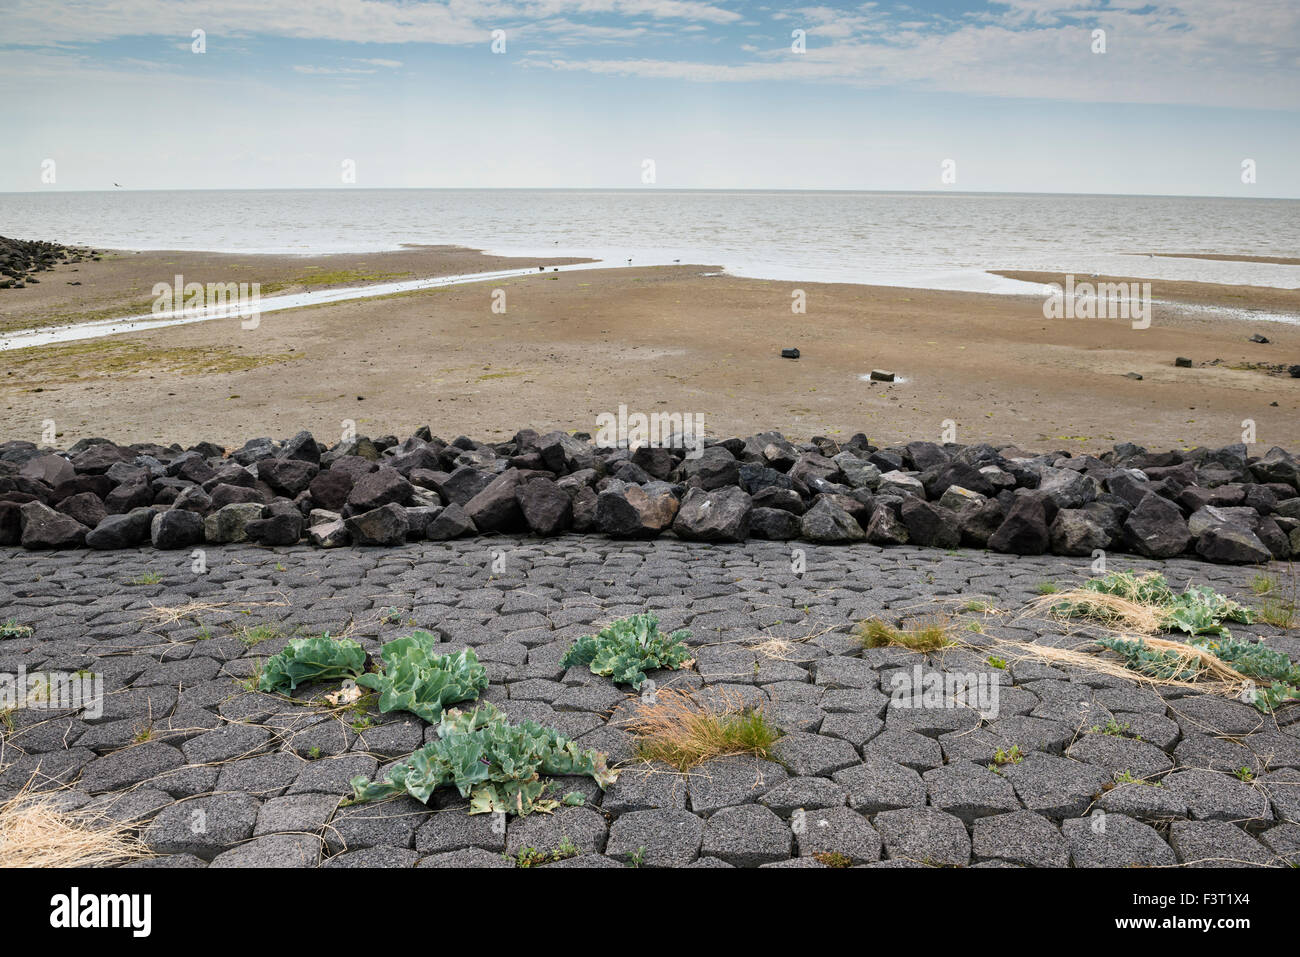 3 July, 2014  Shore of the Wadden Sea with rising water level.  Photo Kees Metselaar - Stock Image